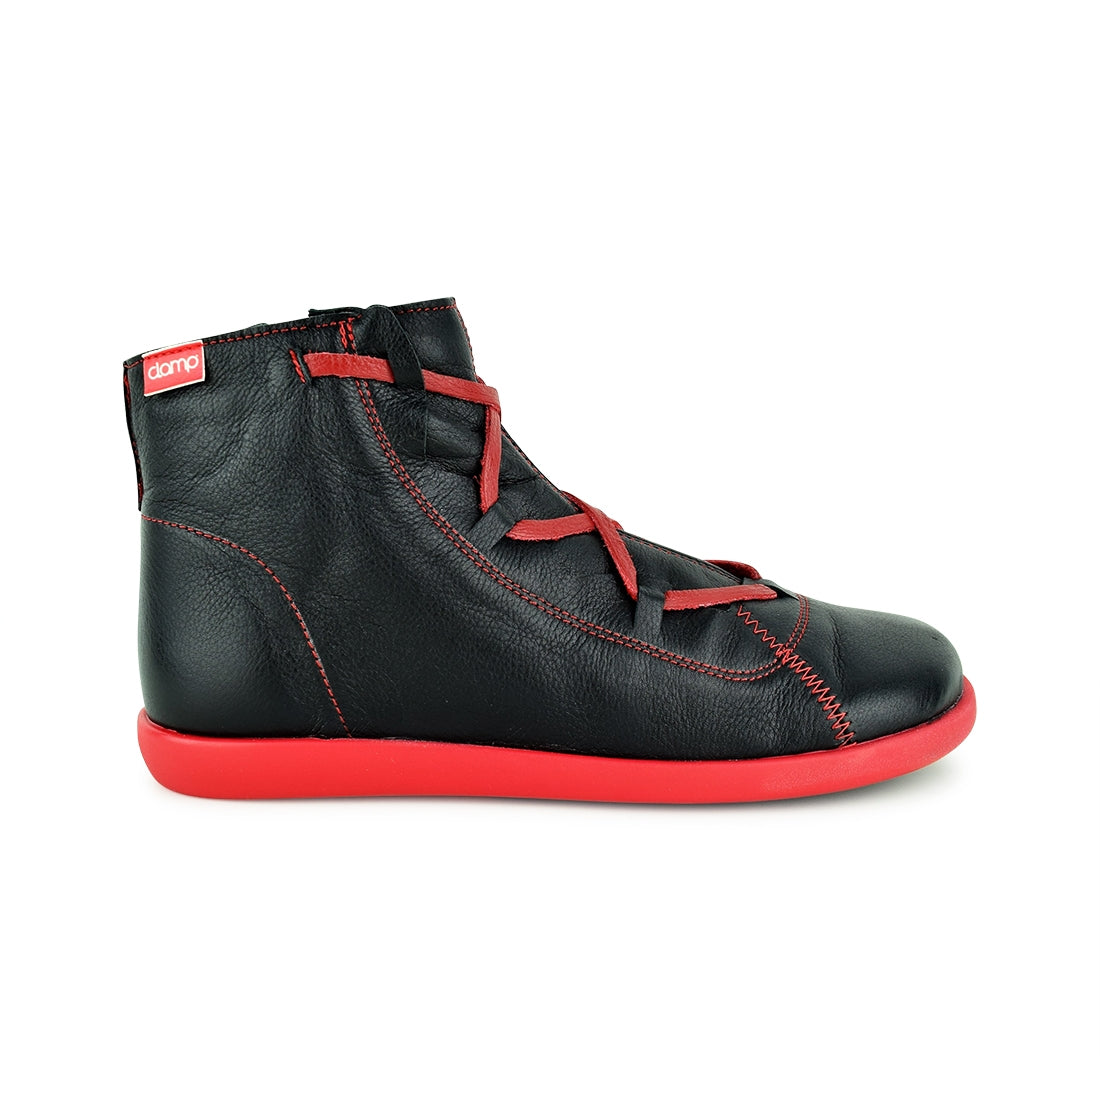 ESTEVAN - Clamp Lace Up Black/Red